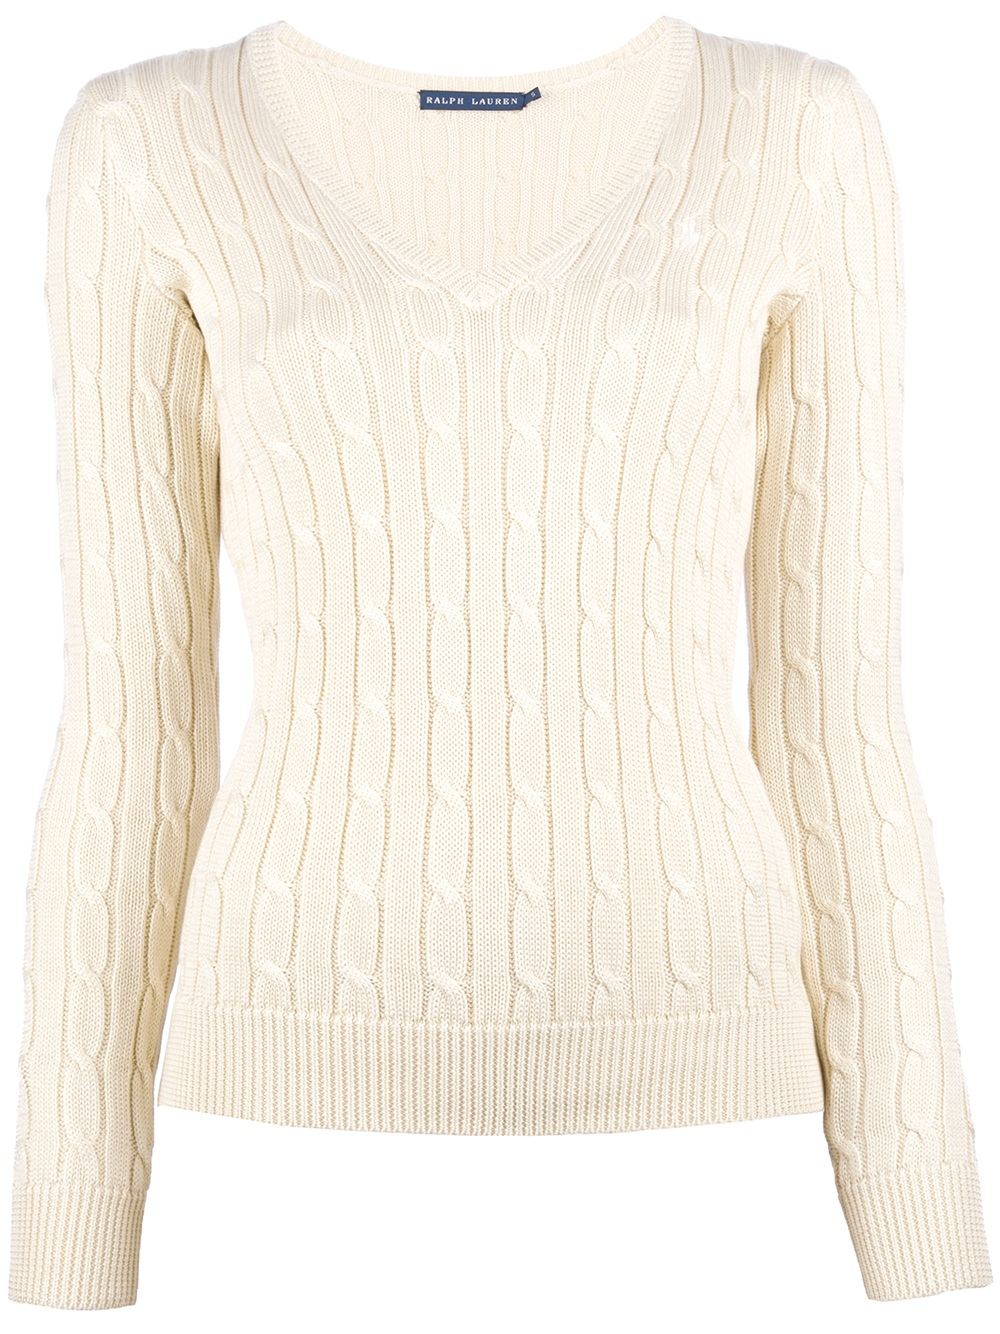 Cream Cashmere Cable-knit Crewneck Sweater Our Cream Cashmere Cable-knit Crewneck Sweater is knitted in the oldest cashmere mill in Inner Mongolia, home of the world's finest cashmere fibers. The factory employs the best technicians from Italy and Germany to /5(3).